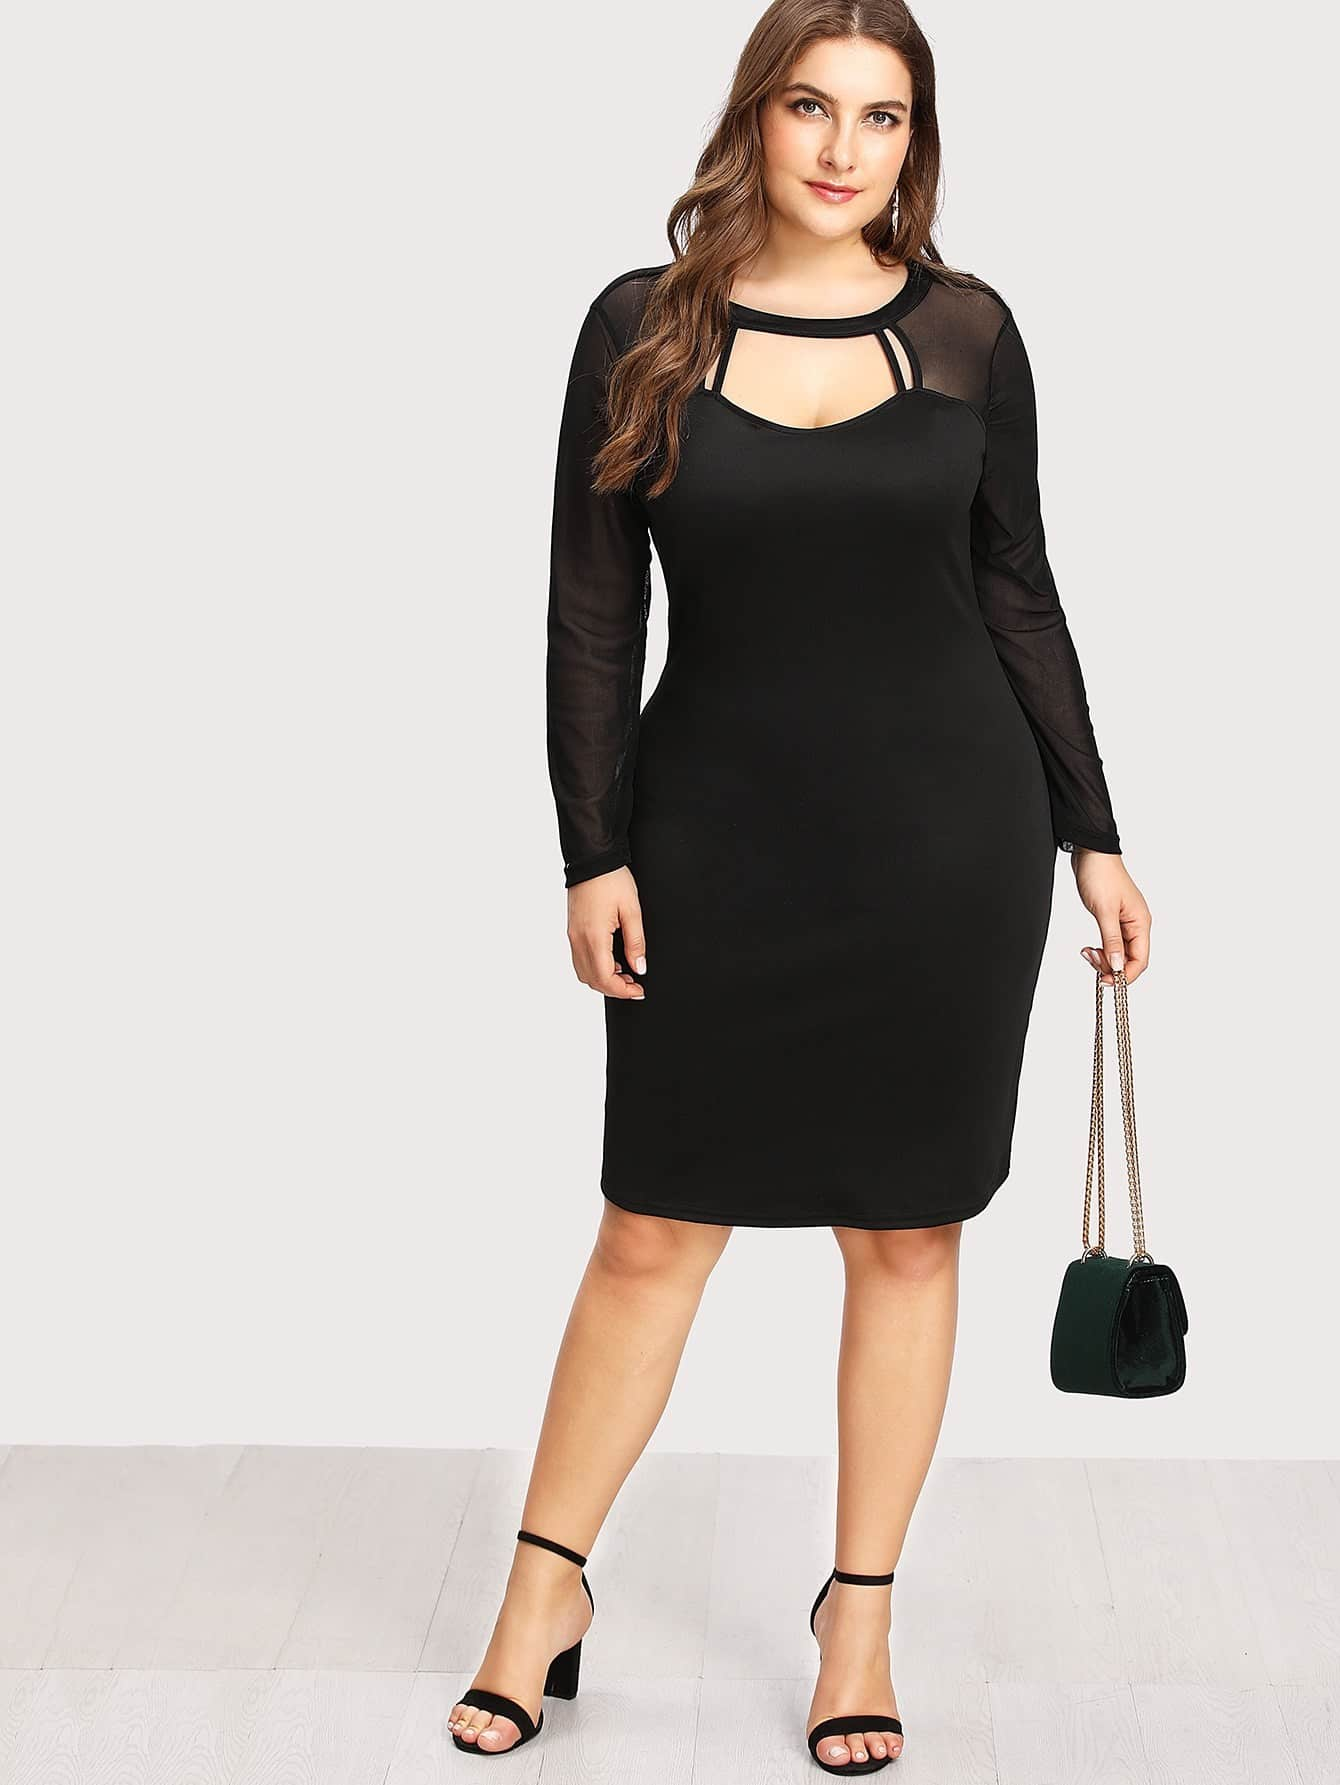 Cut Out Front Mesh Contrast Dress contrast collar foldover front dress